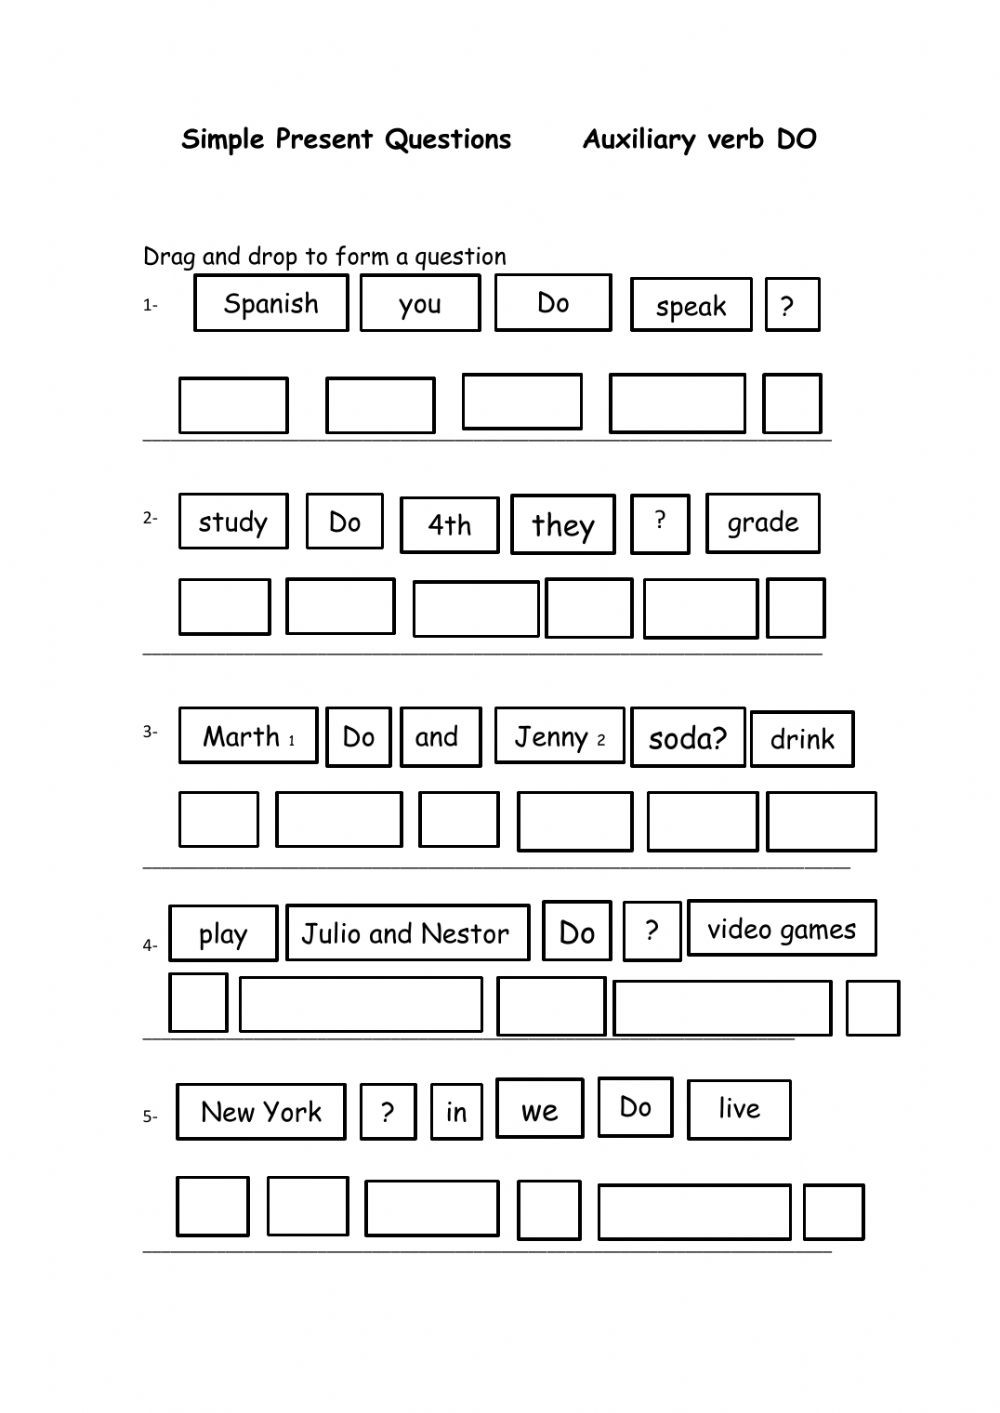 Verbs Worksheet 4th Grade Simple Present Questions with Aux Verb Do Interactive